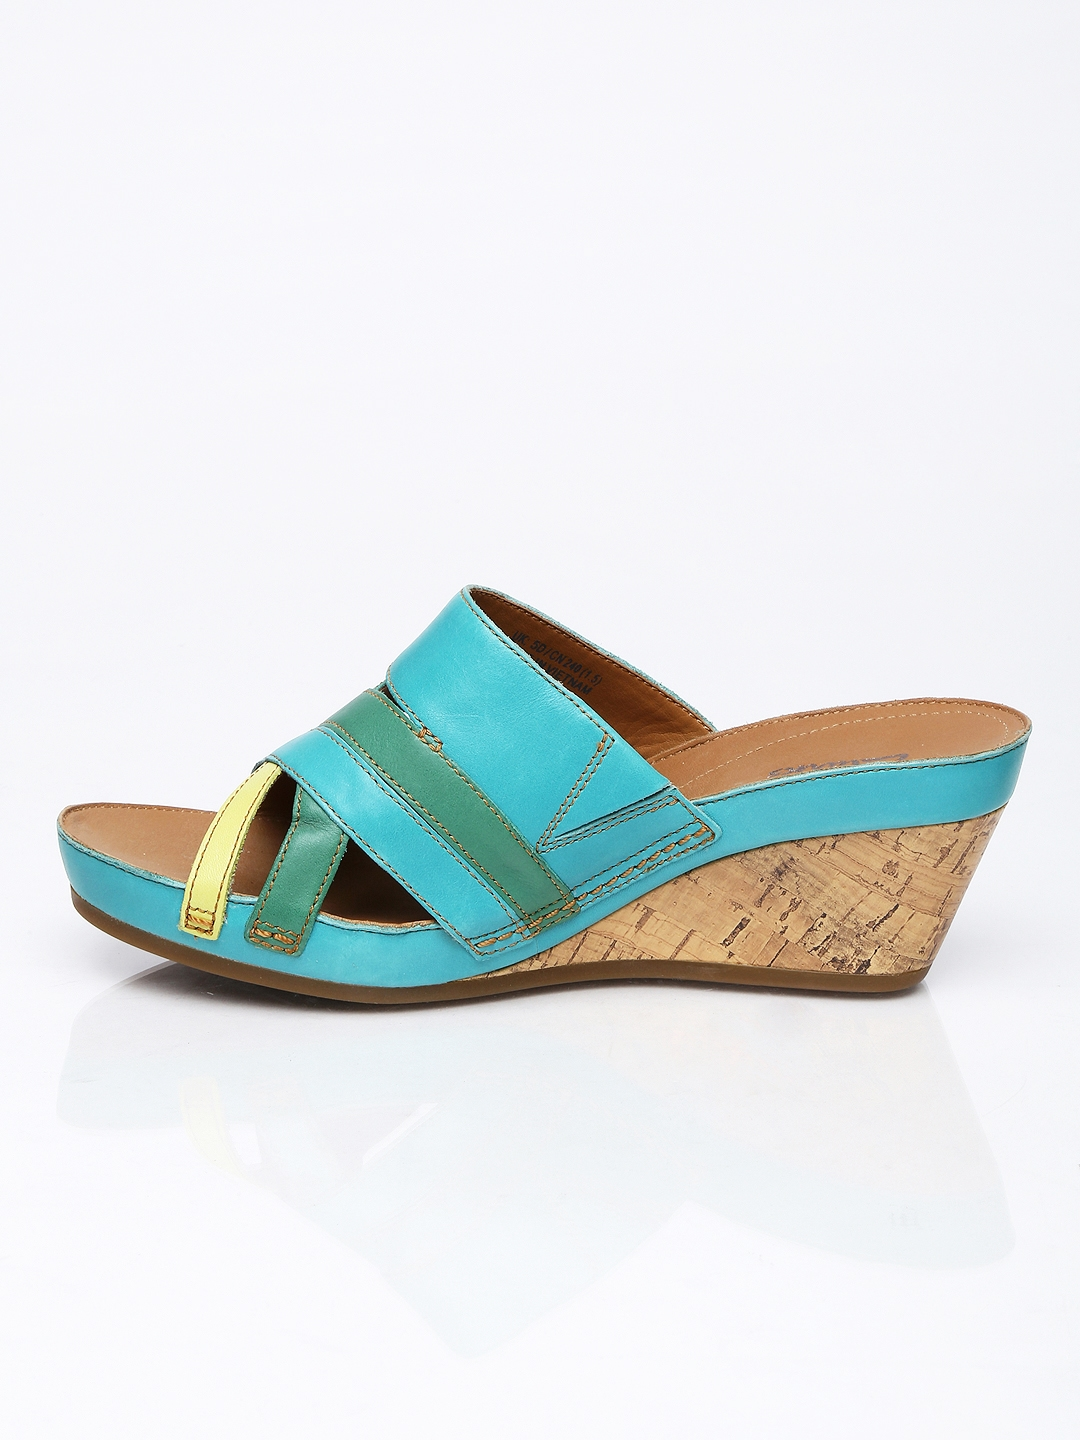 a238877db89 Buy Clarks Women Turquoise Blue   Green Wedges - Heels for Women ...